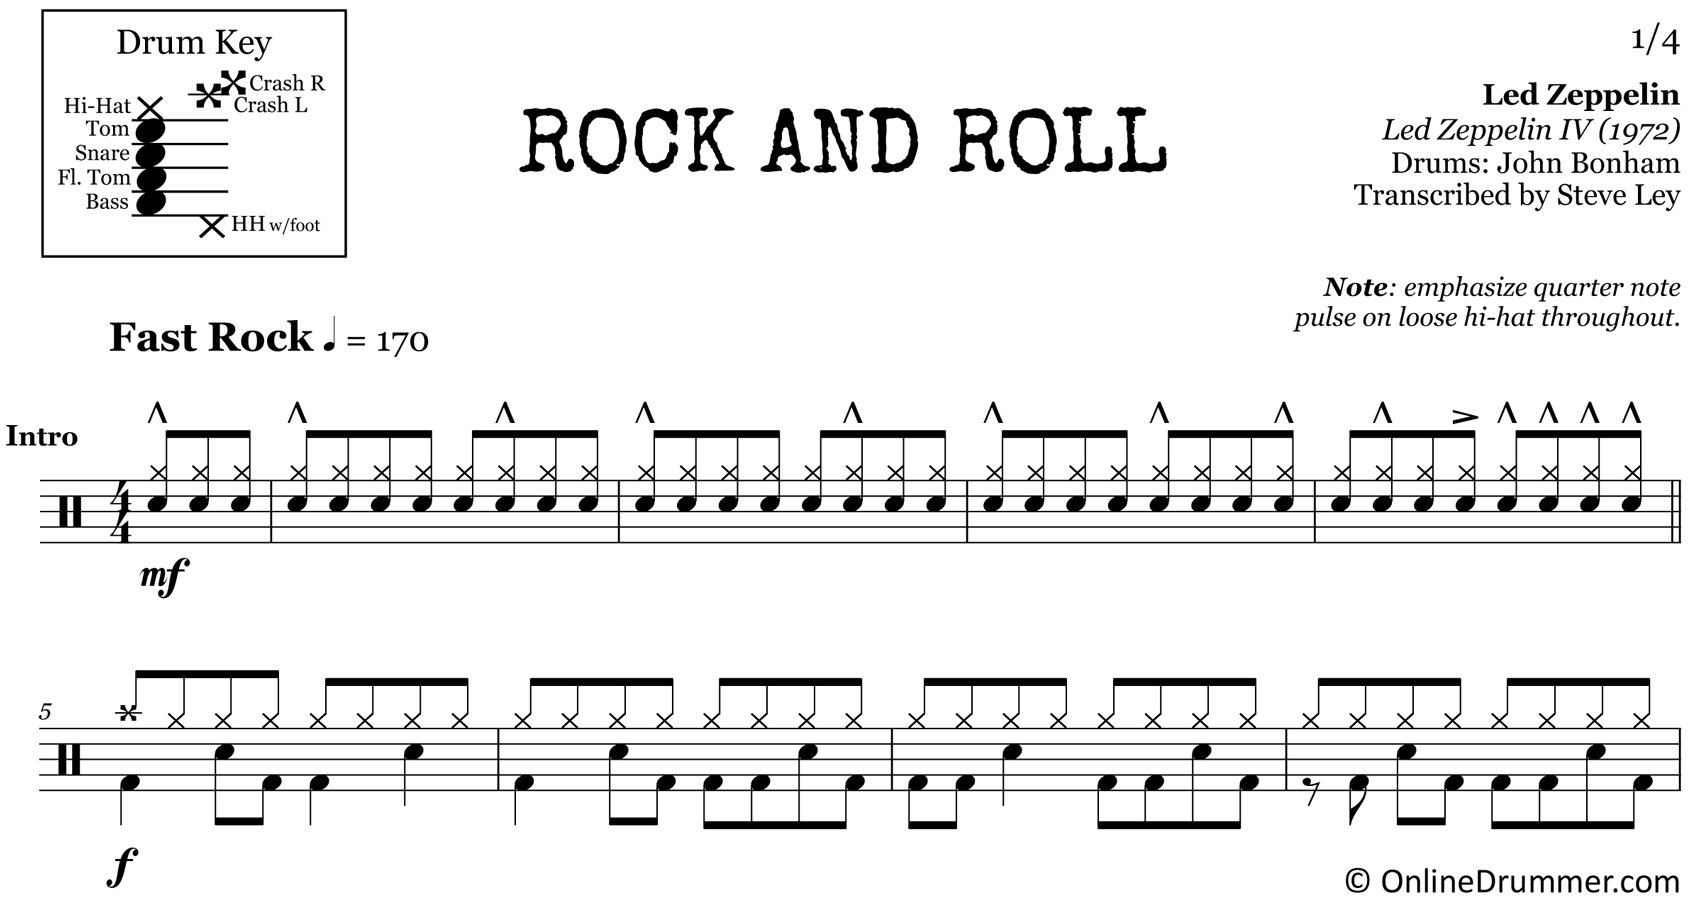 Rock and Roll - Led Zeppelin - Drum Sheet Music